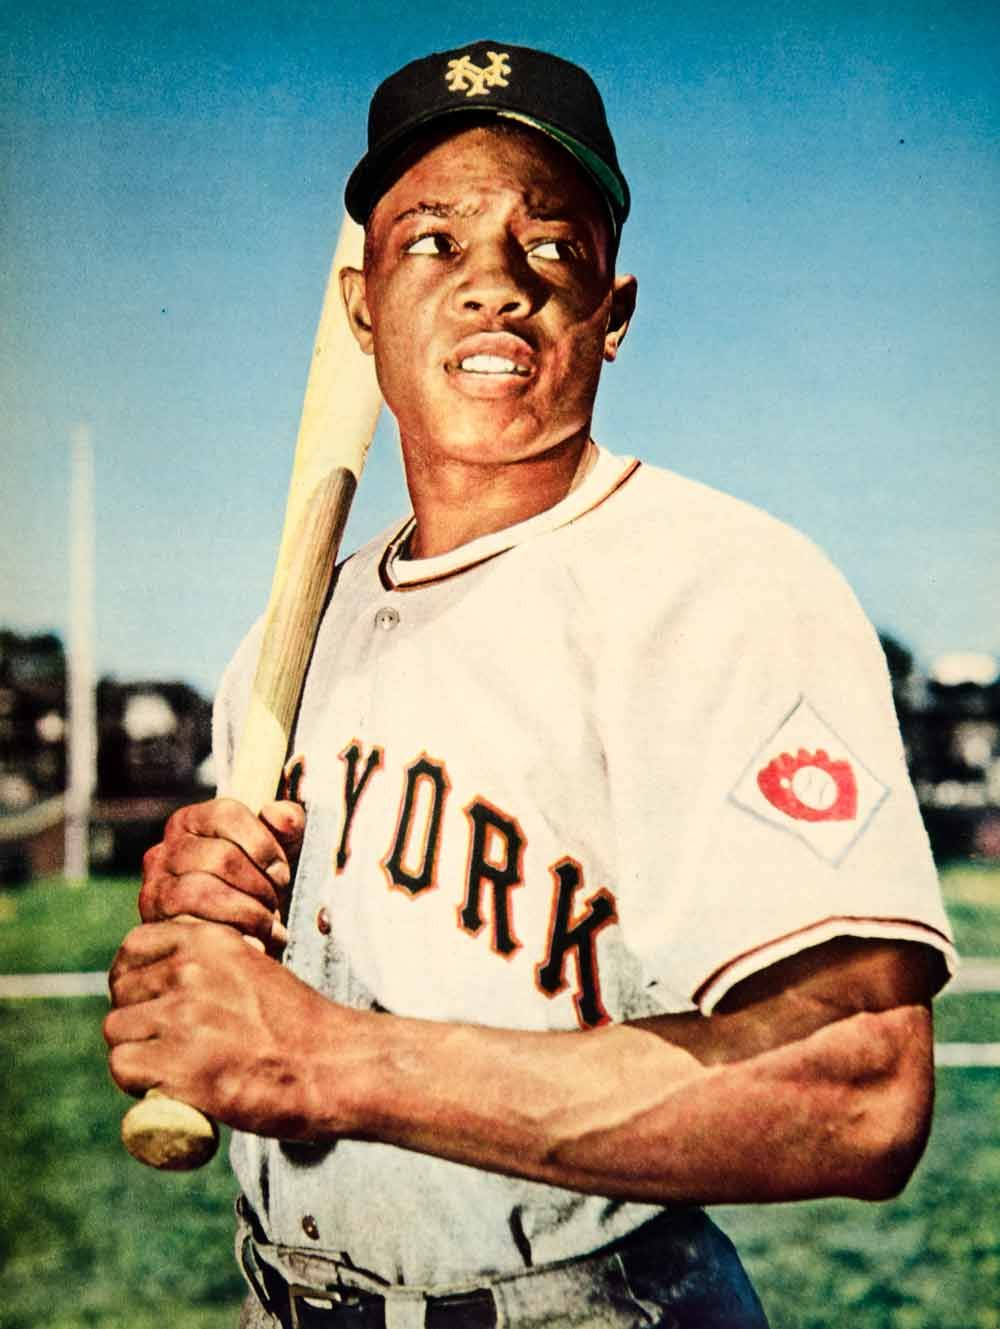 1951 Rotogravure Portrait Willie Mays Say Hey Kid MLB Baseball New York  Giants 21cd4530b